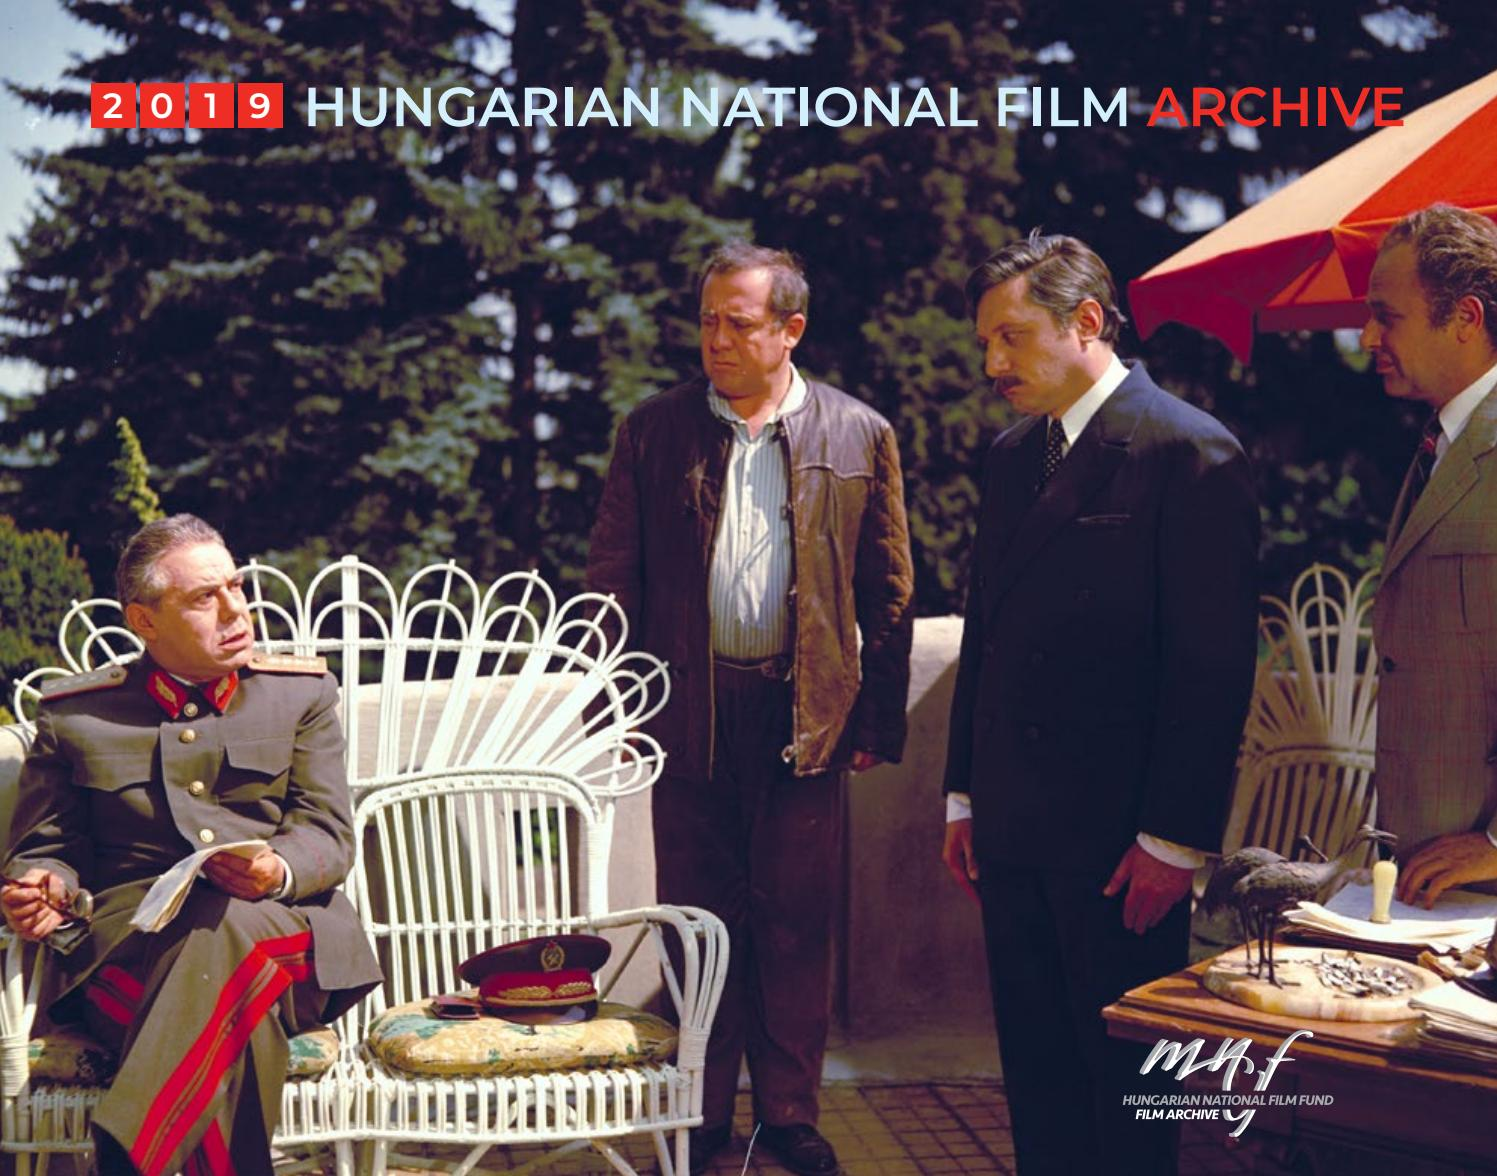 Hungarian National Film Archive 2019 Catalogue By National Film Institute Film Archive Hungary Issuu